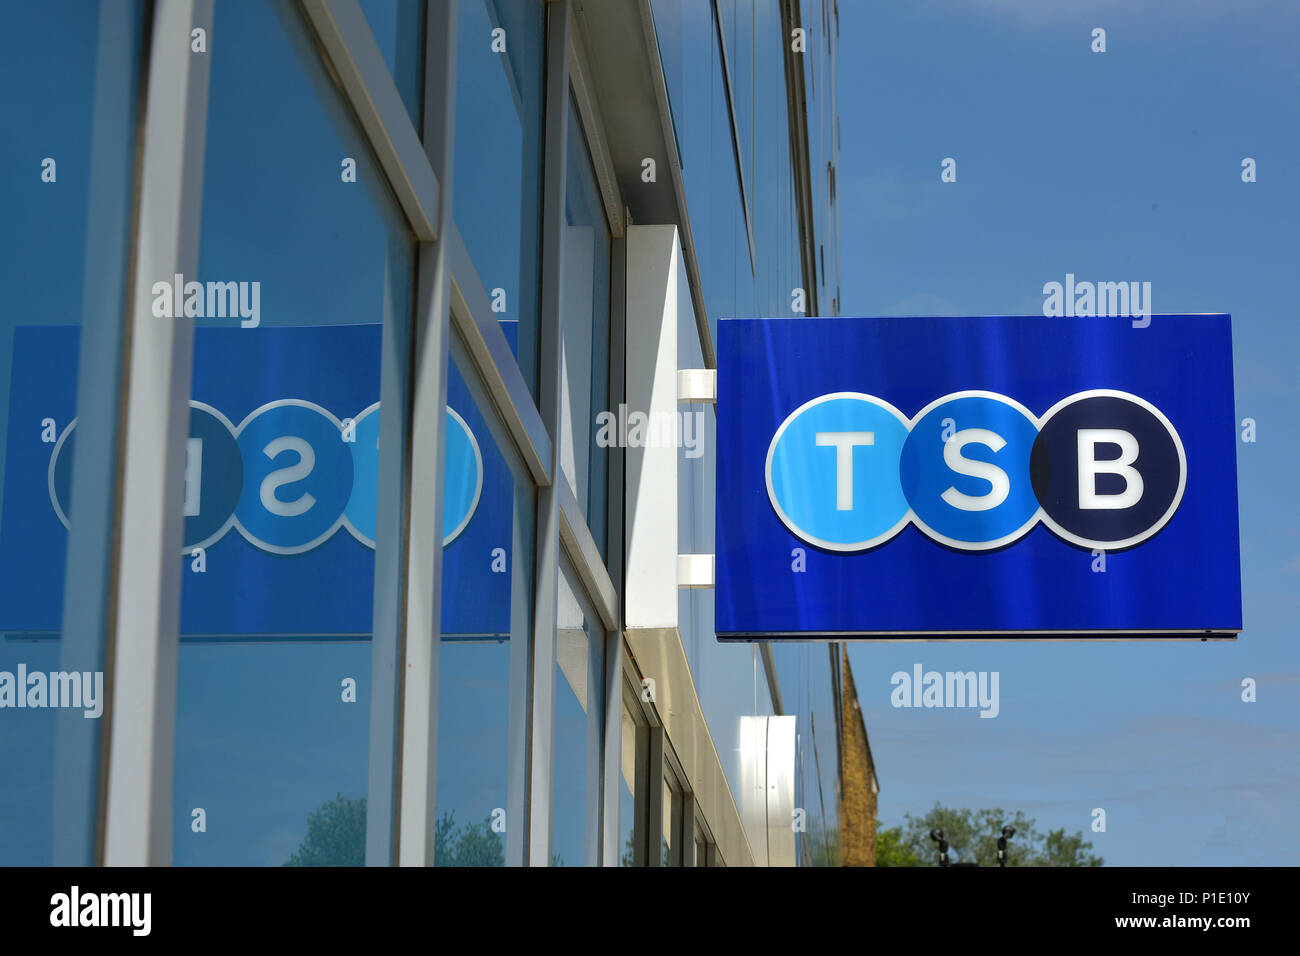 The logo of the bank TSB on the outside of its branch in Archway, North London. - Stock Image